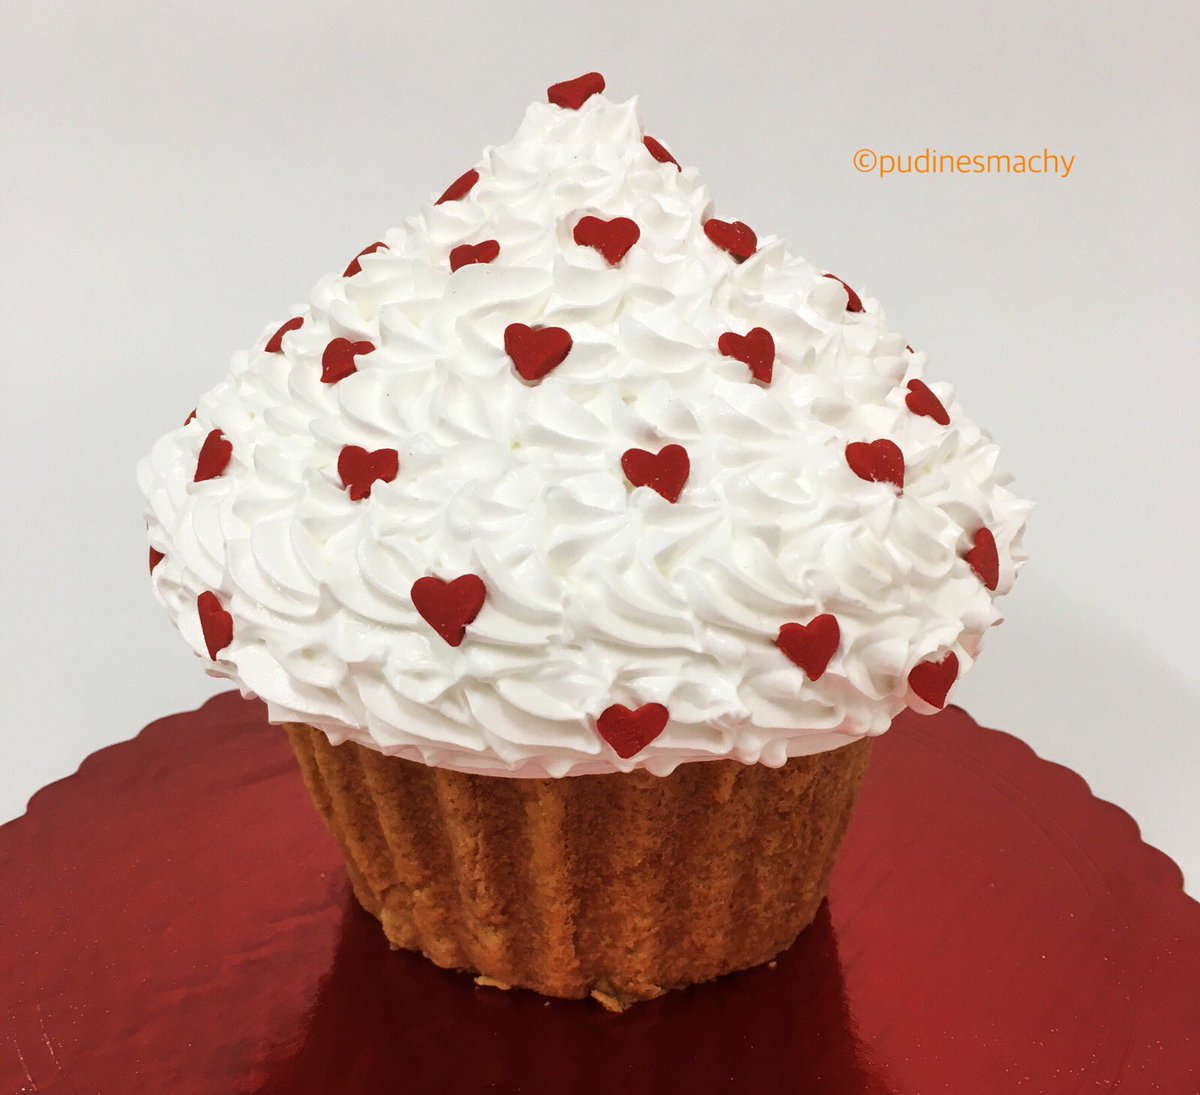 Pudines Machy On Twitter Cupcake Gigante